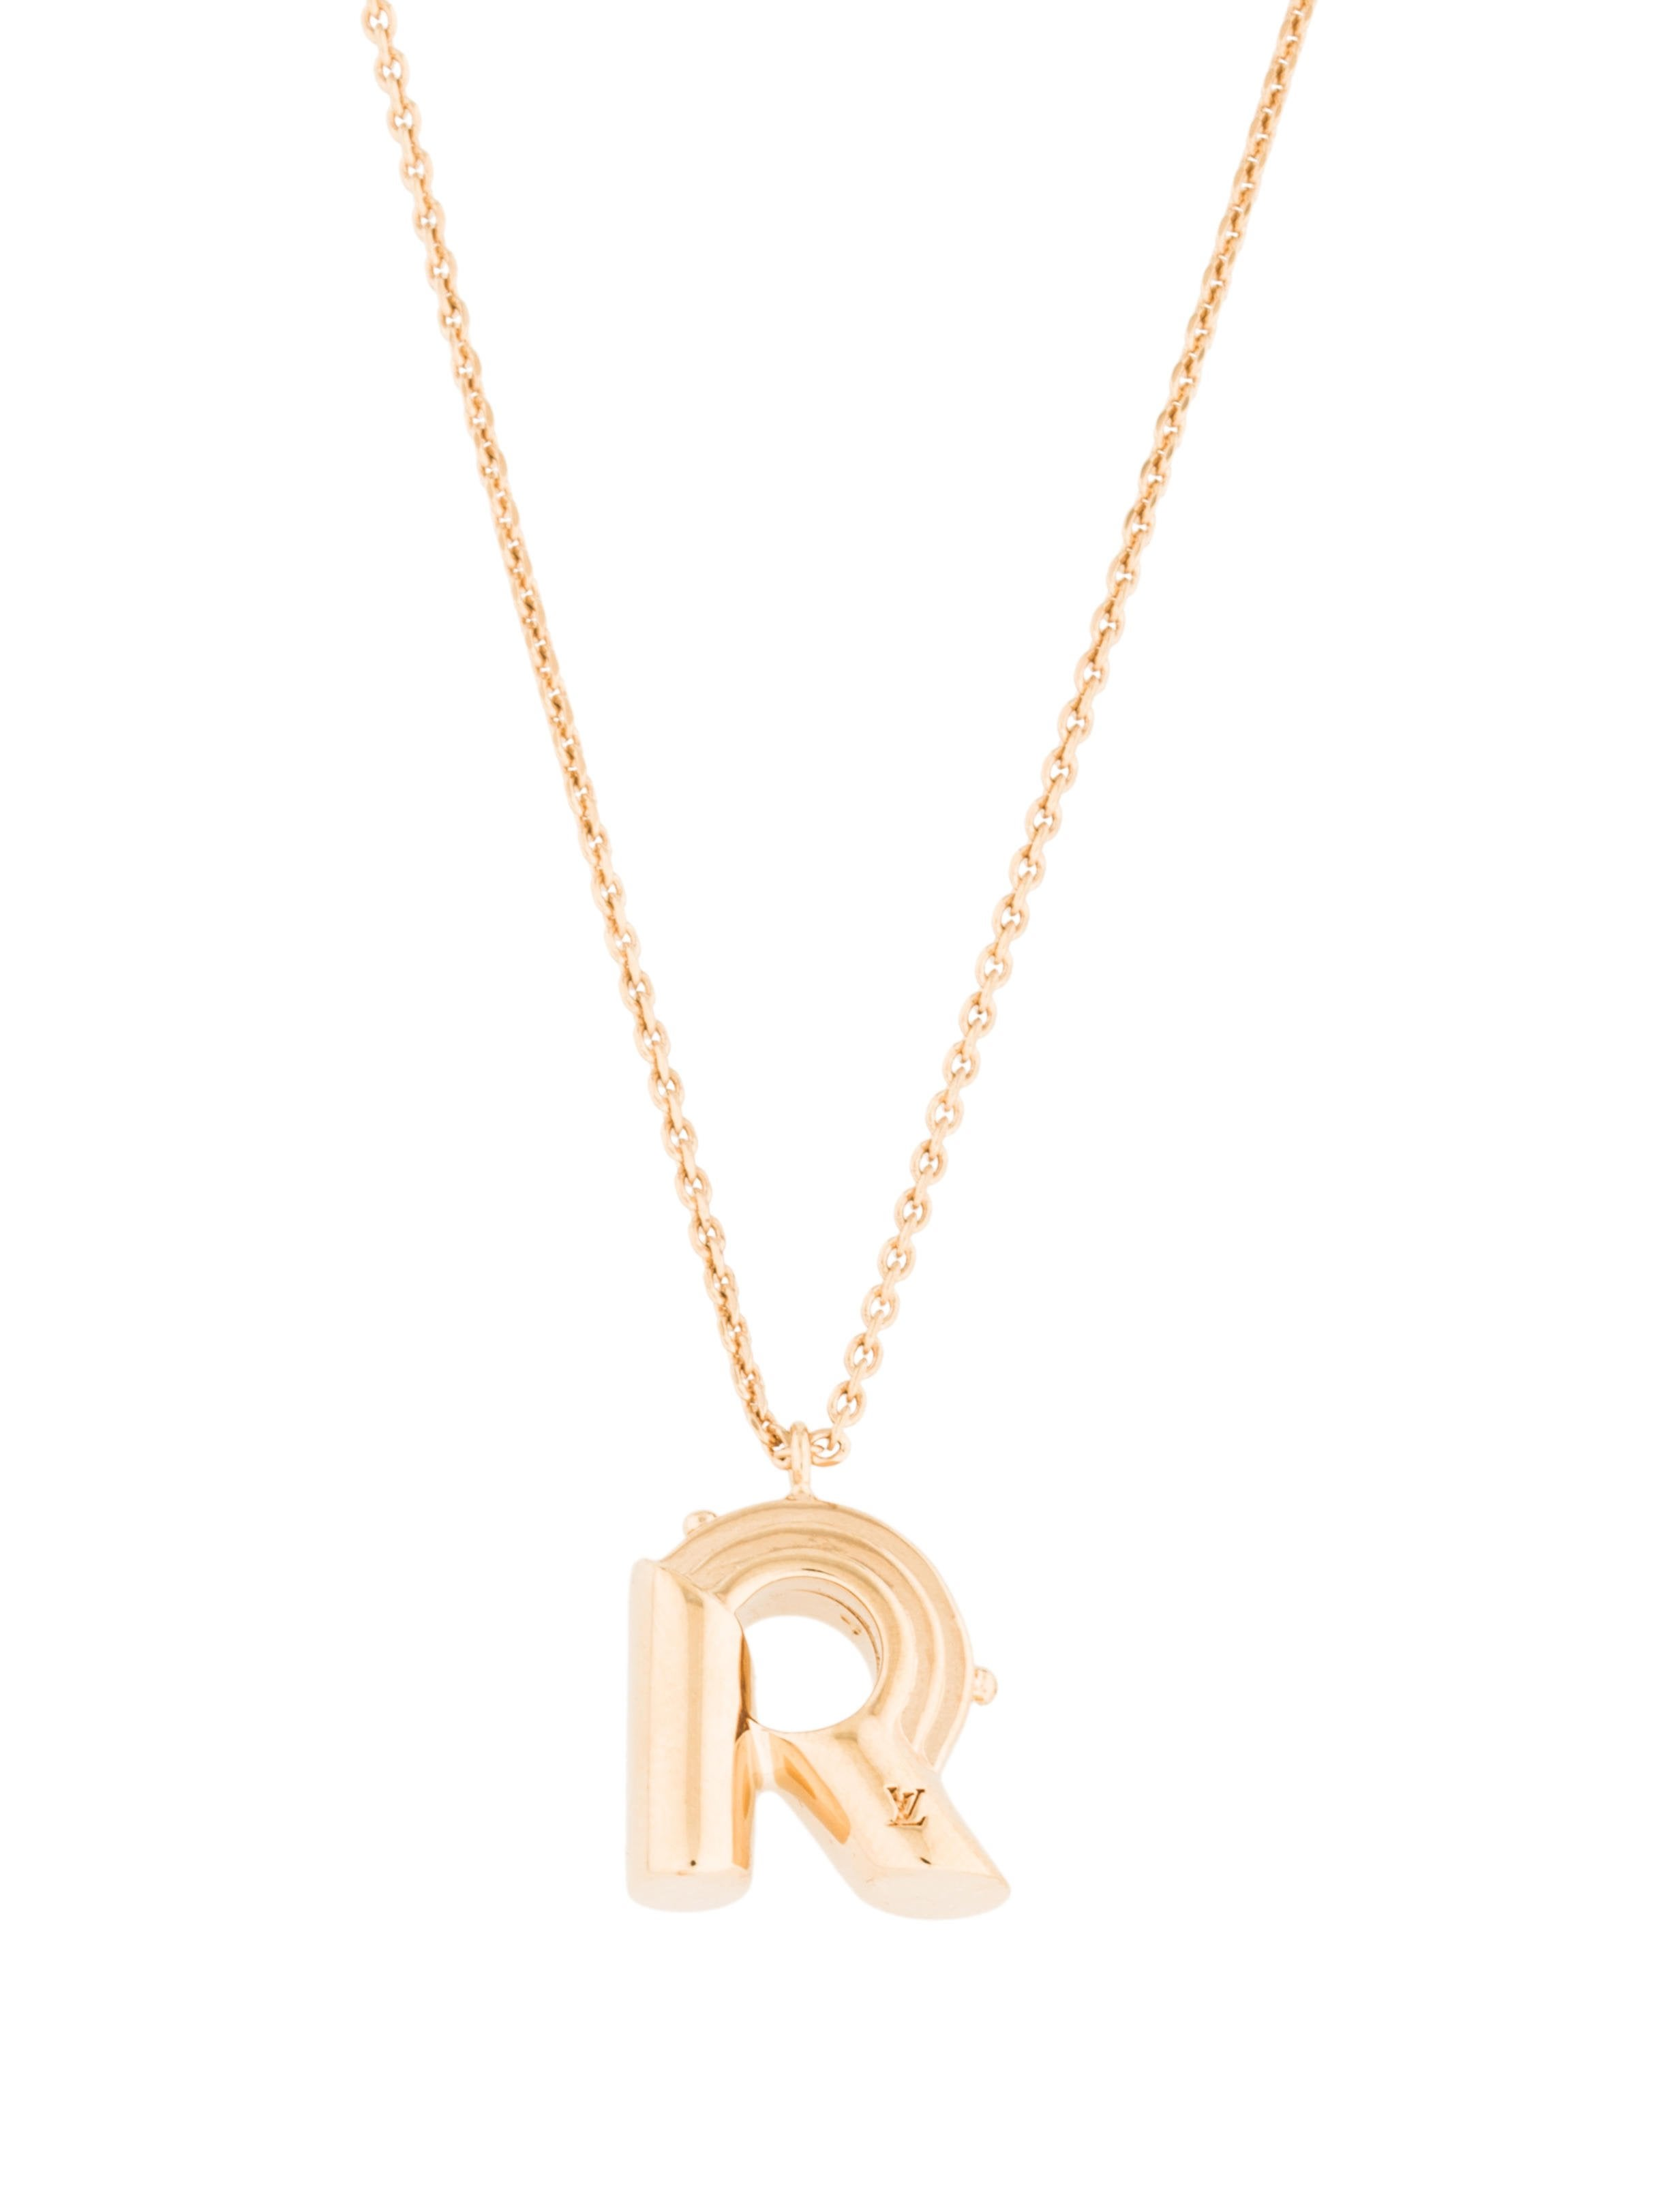 Louis vuitton lv me necklace letter r necklaces for Louis vuitton letter necklace